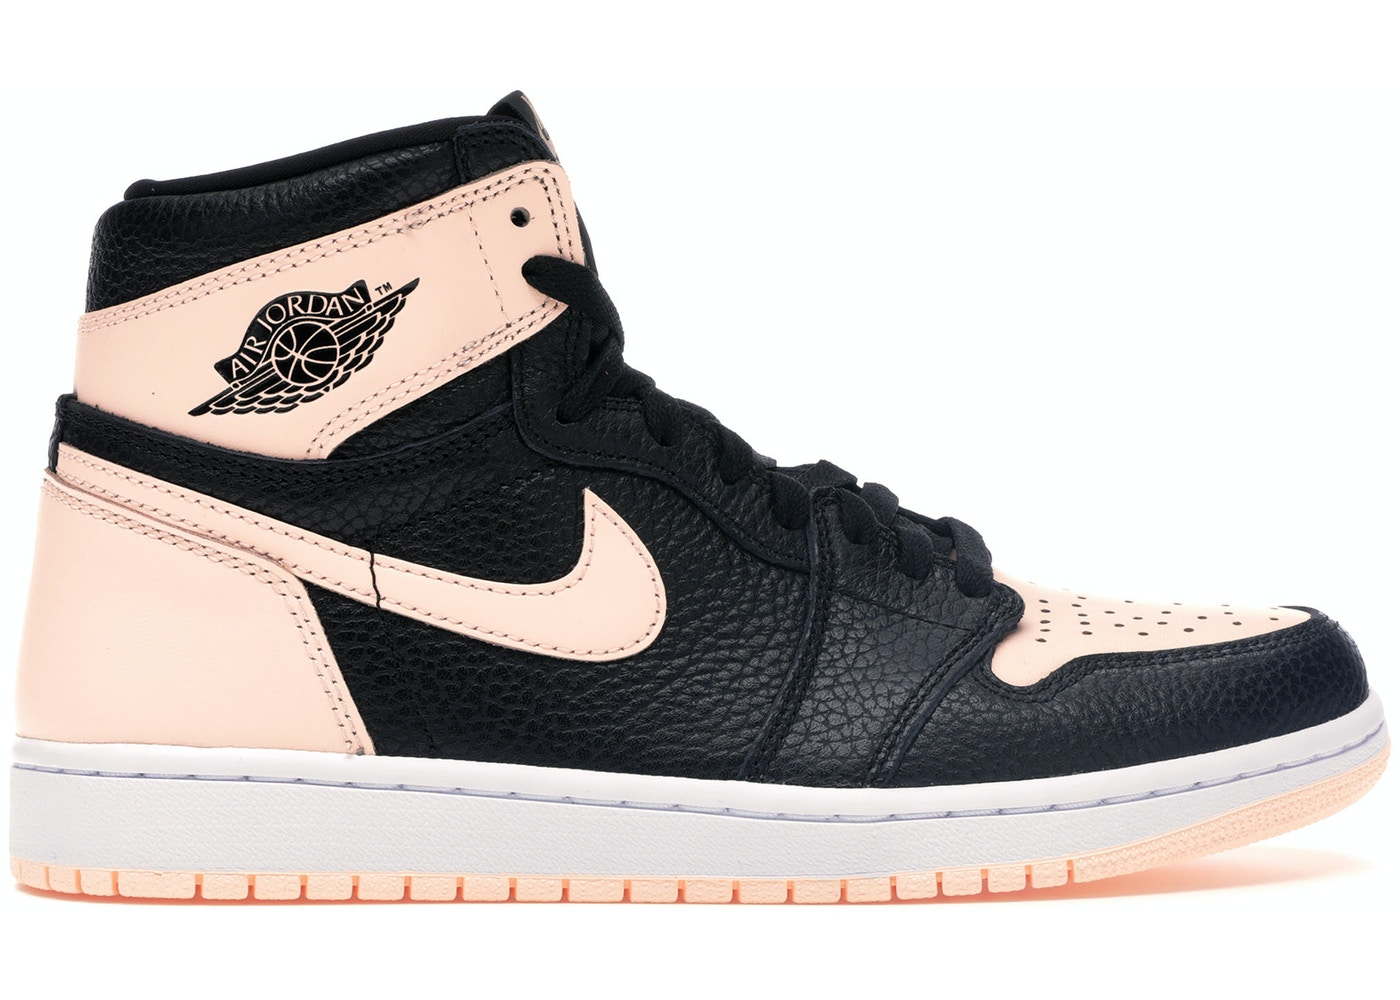 7cc96076e Sell. or Ask. Size 7. View All Bids. Jordan 1 Retro High Black Crimson Tint